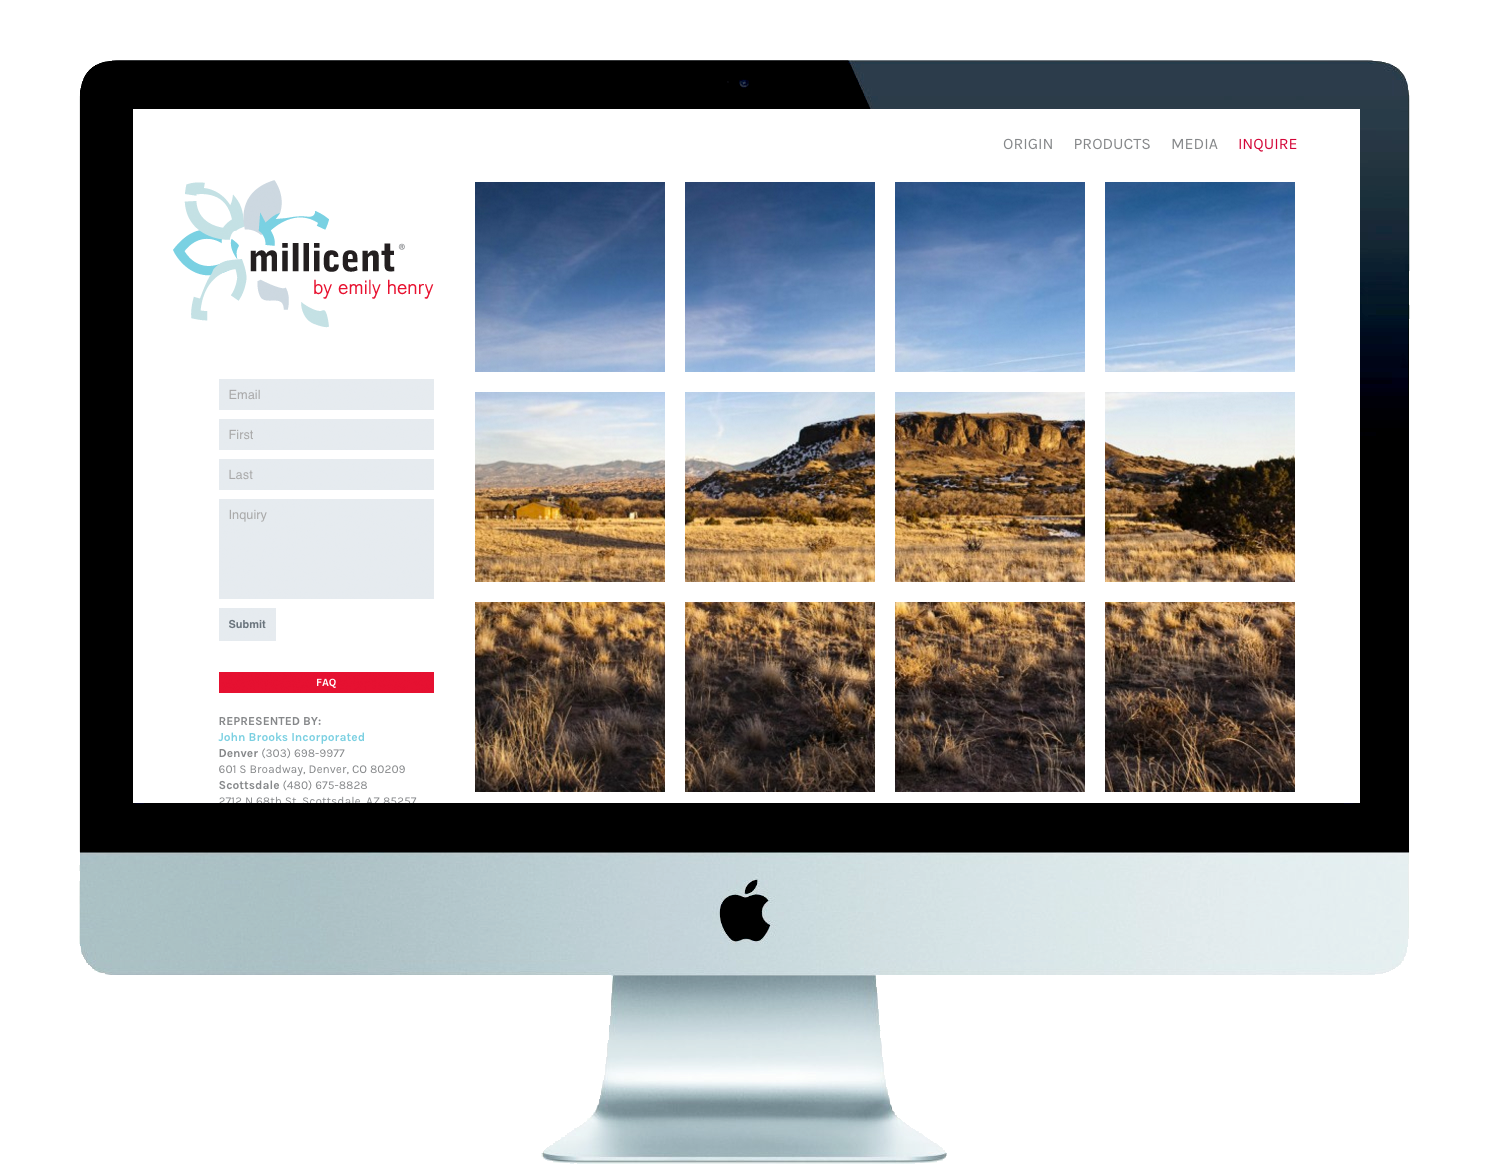 millicent-website-05